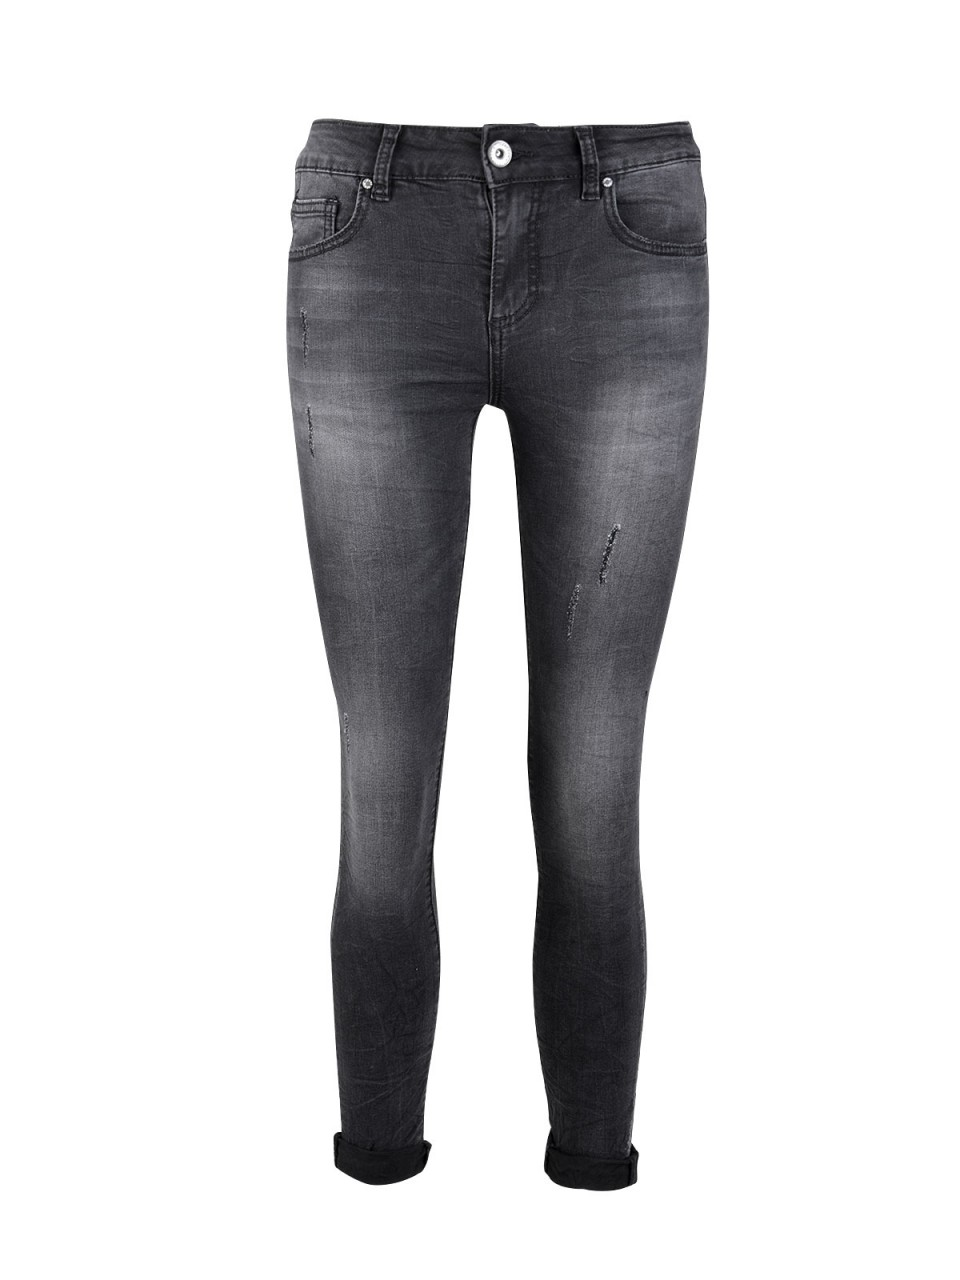 "3D DENIM Damen Ankle Jeans ""3D-619"", schwarz"